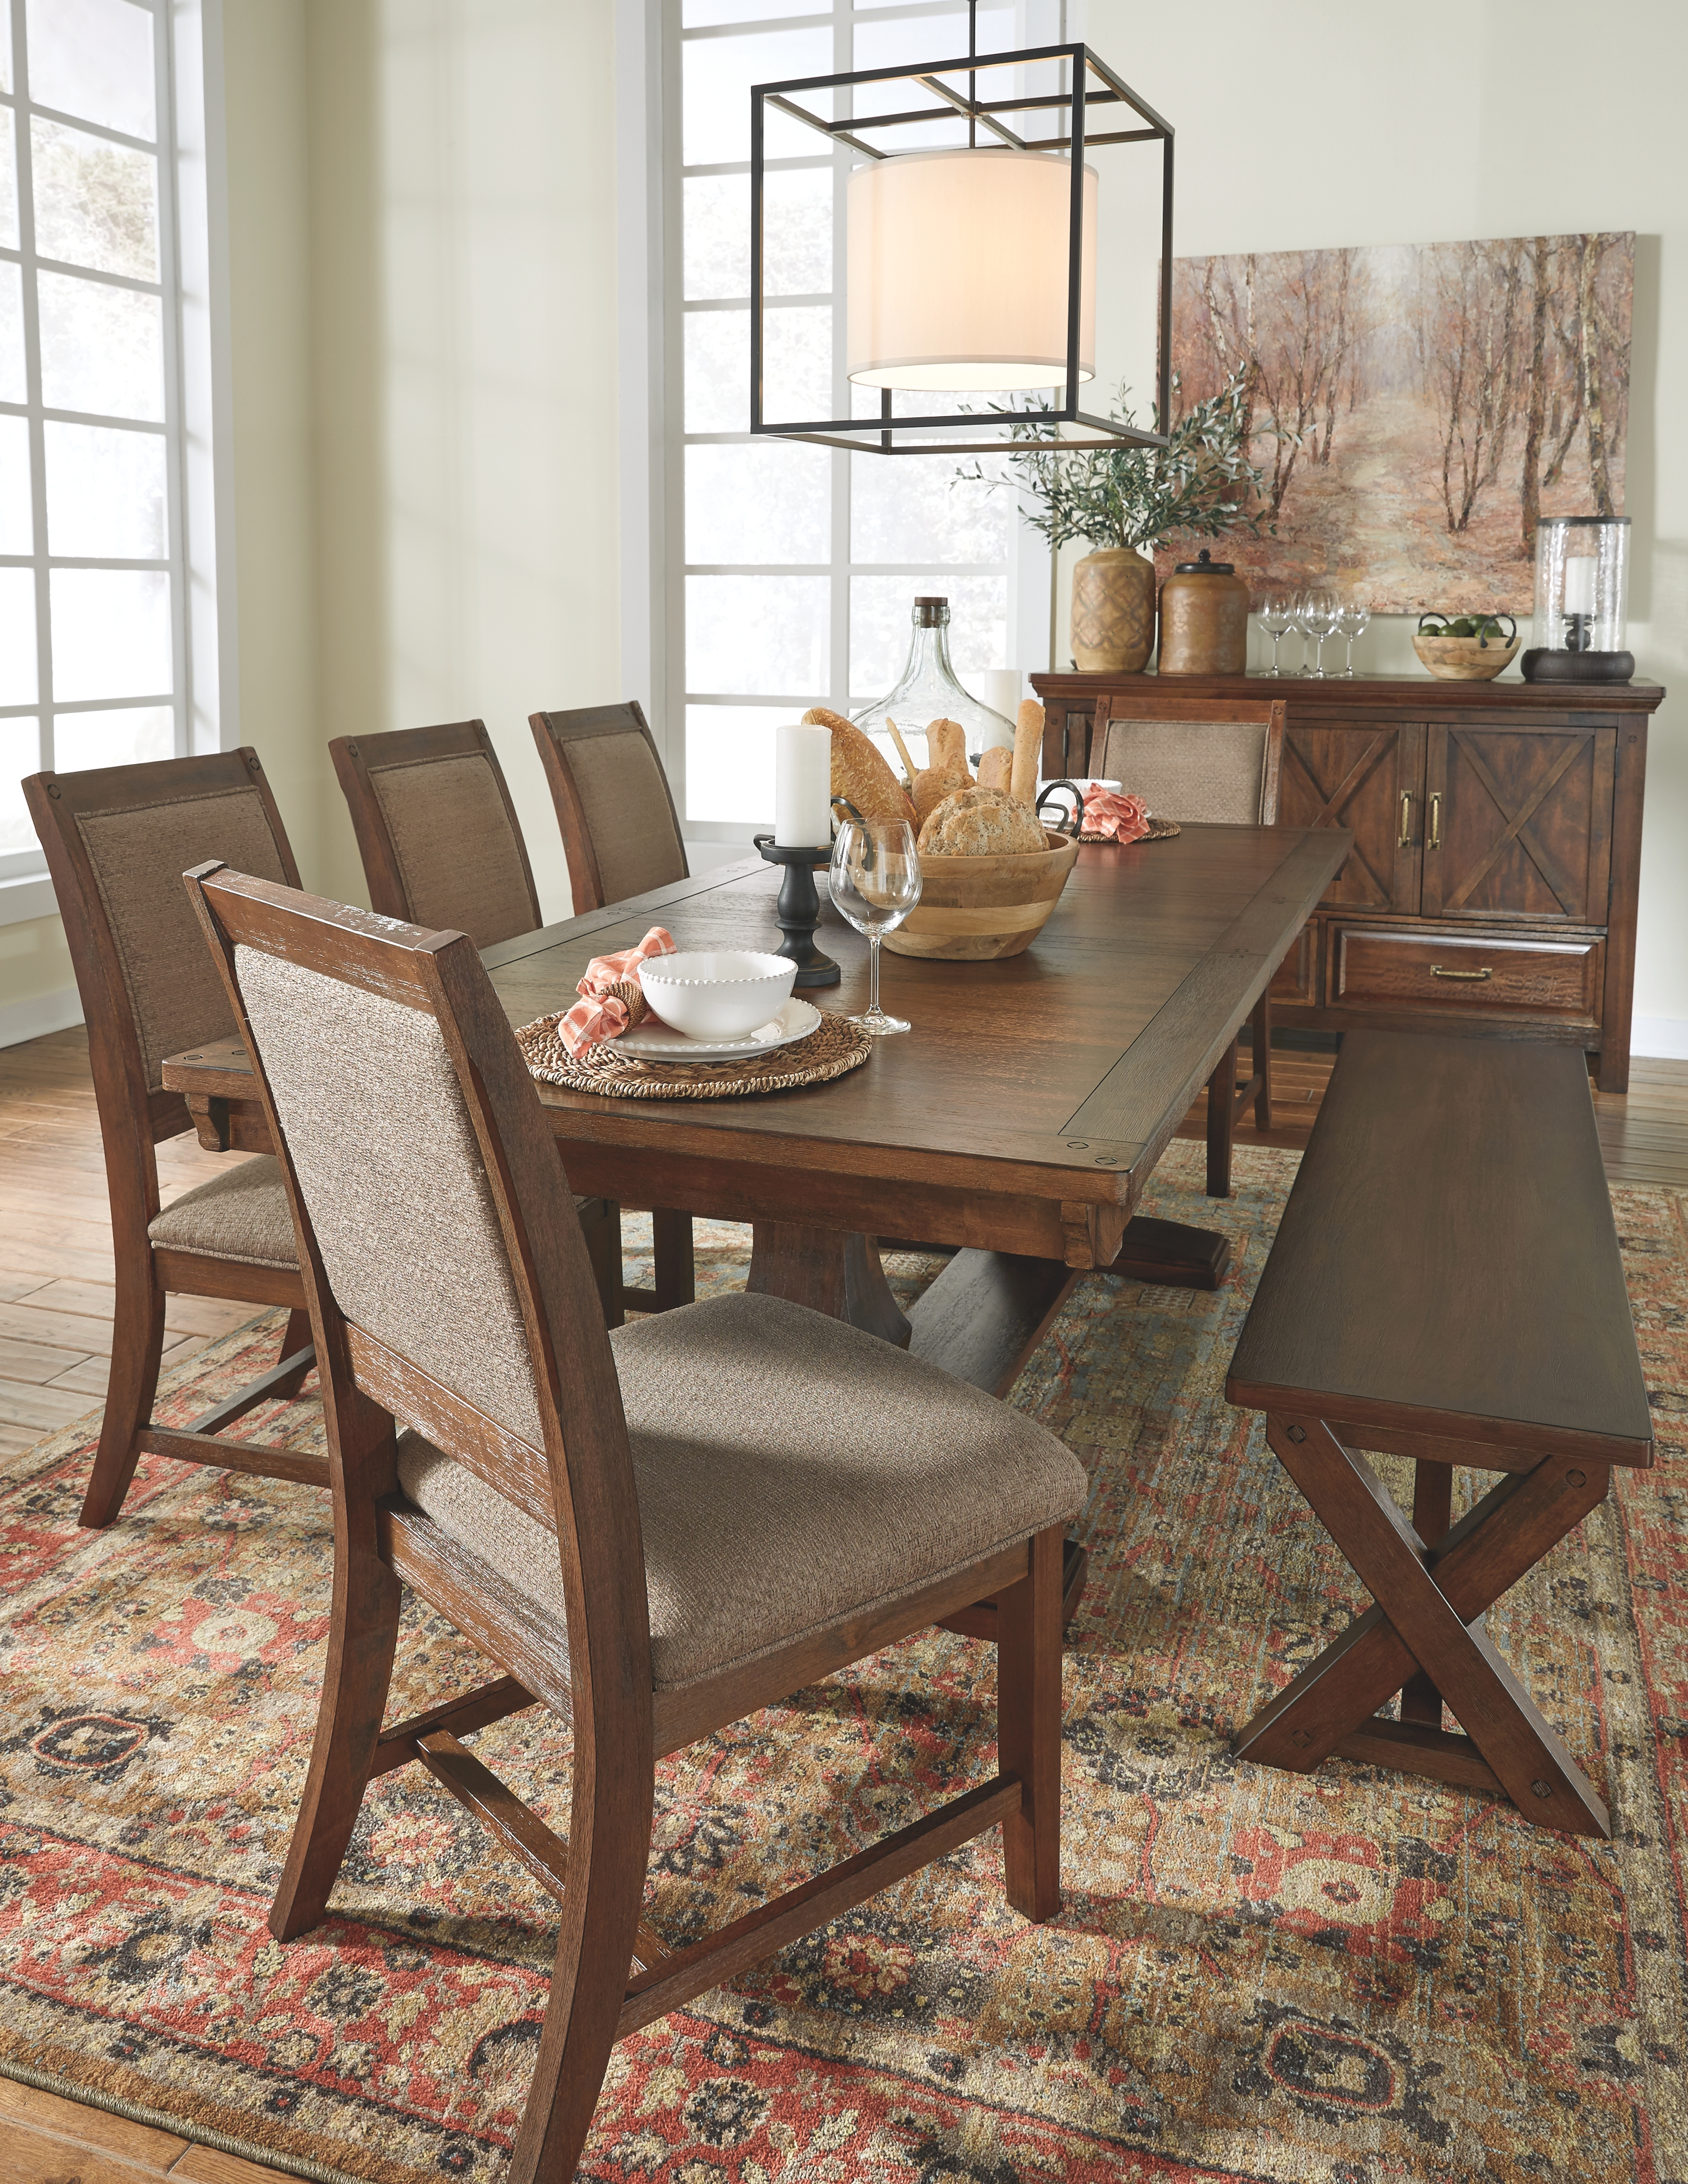 Windville Dining Room Chair By Millennium By Ashley Nis683571509 Missouri Furniture